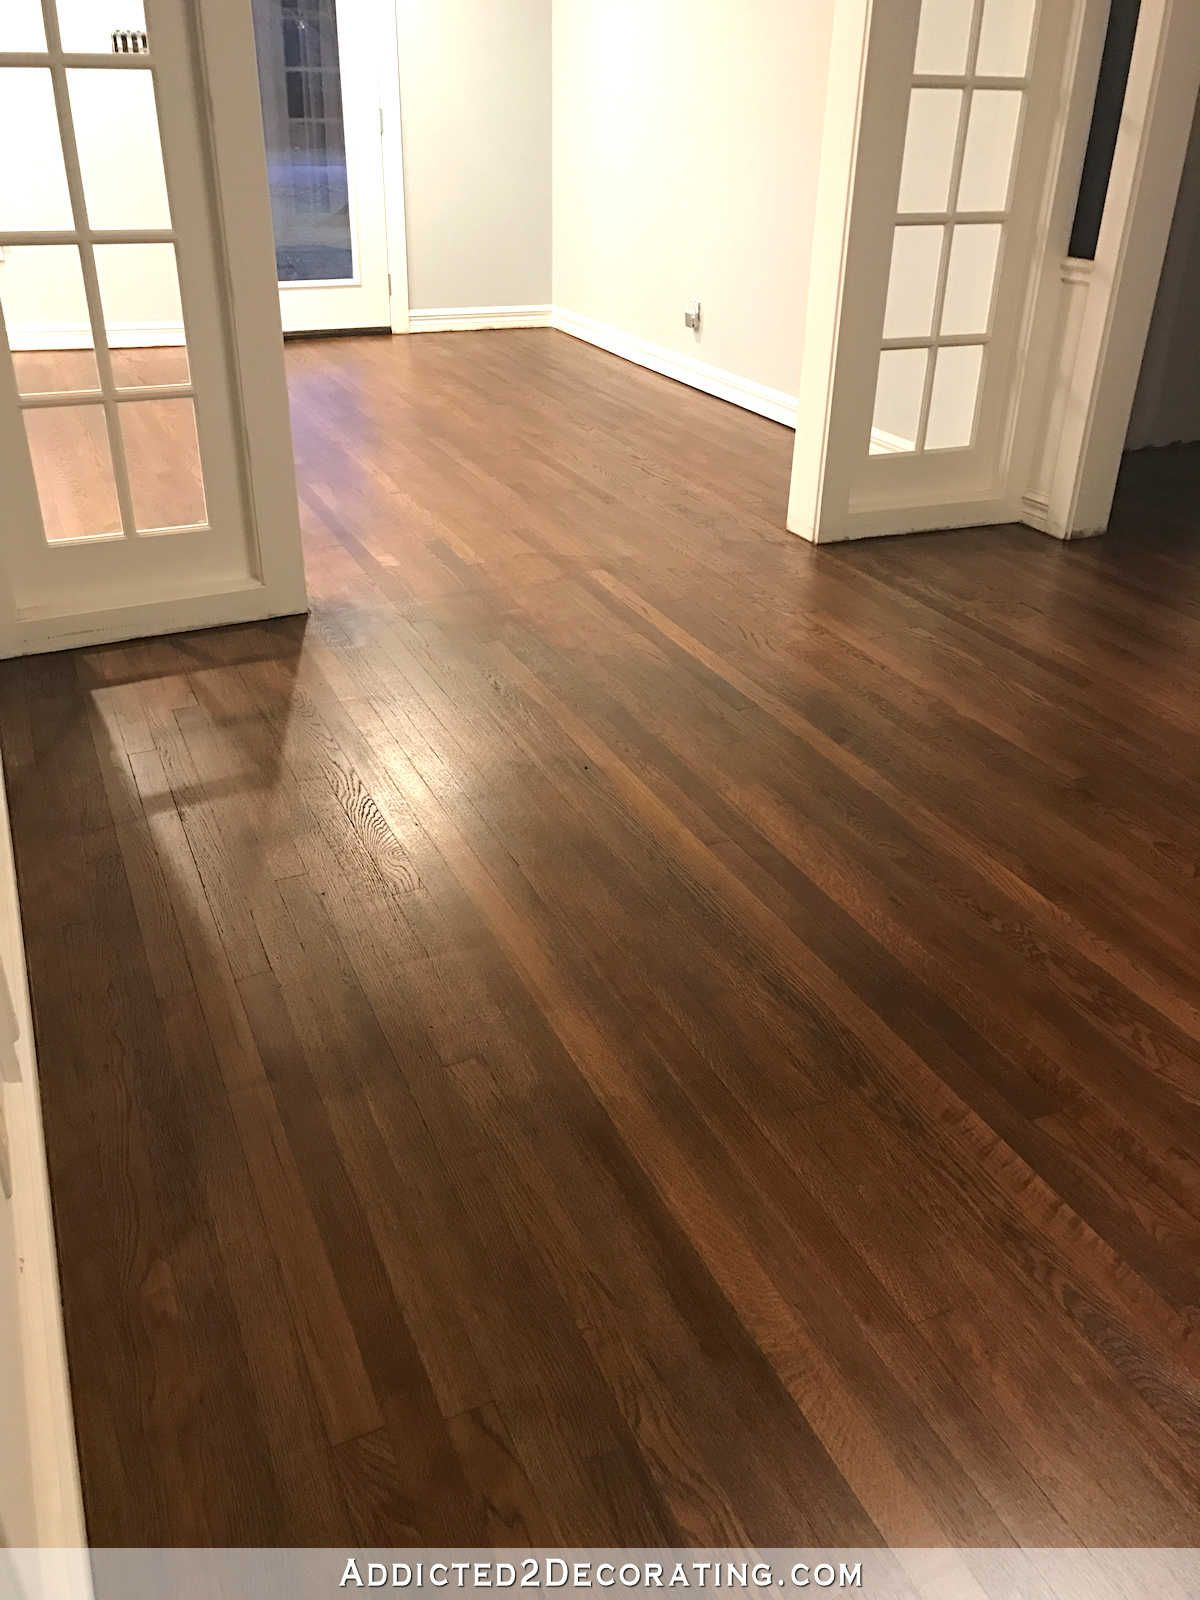 the hardwood floor refinishing adventure continues – tip for getting